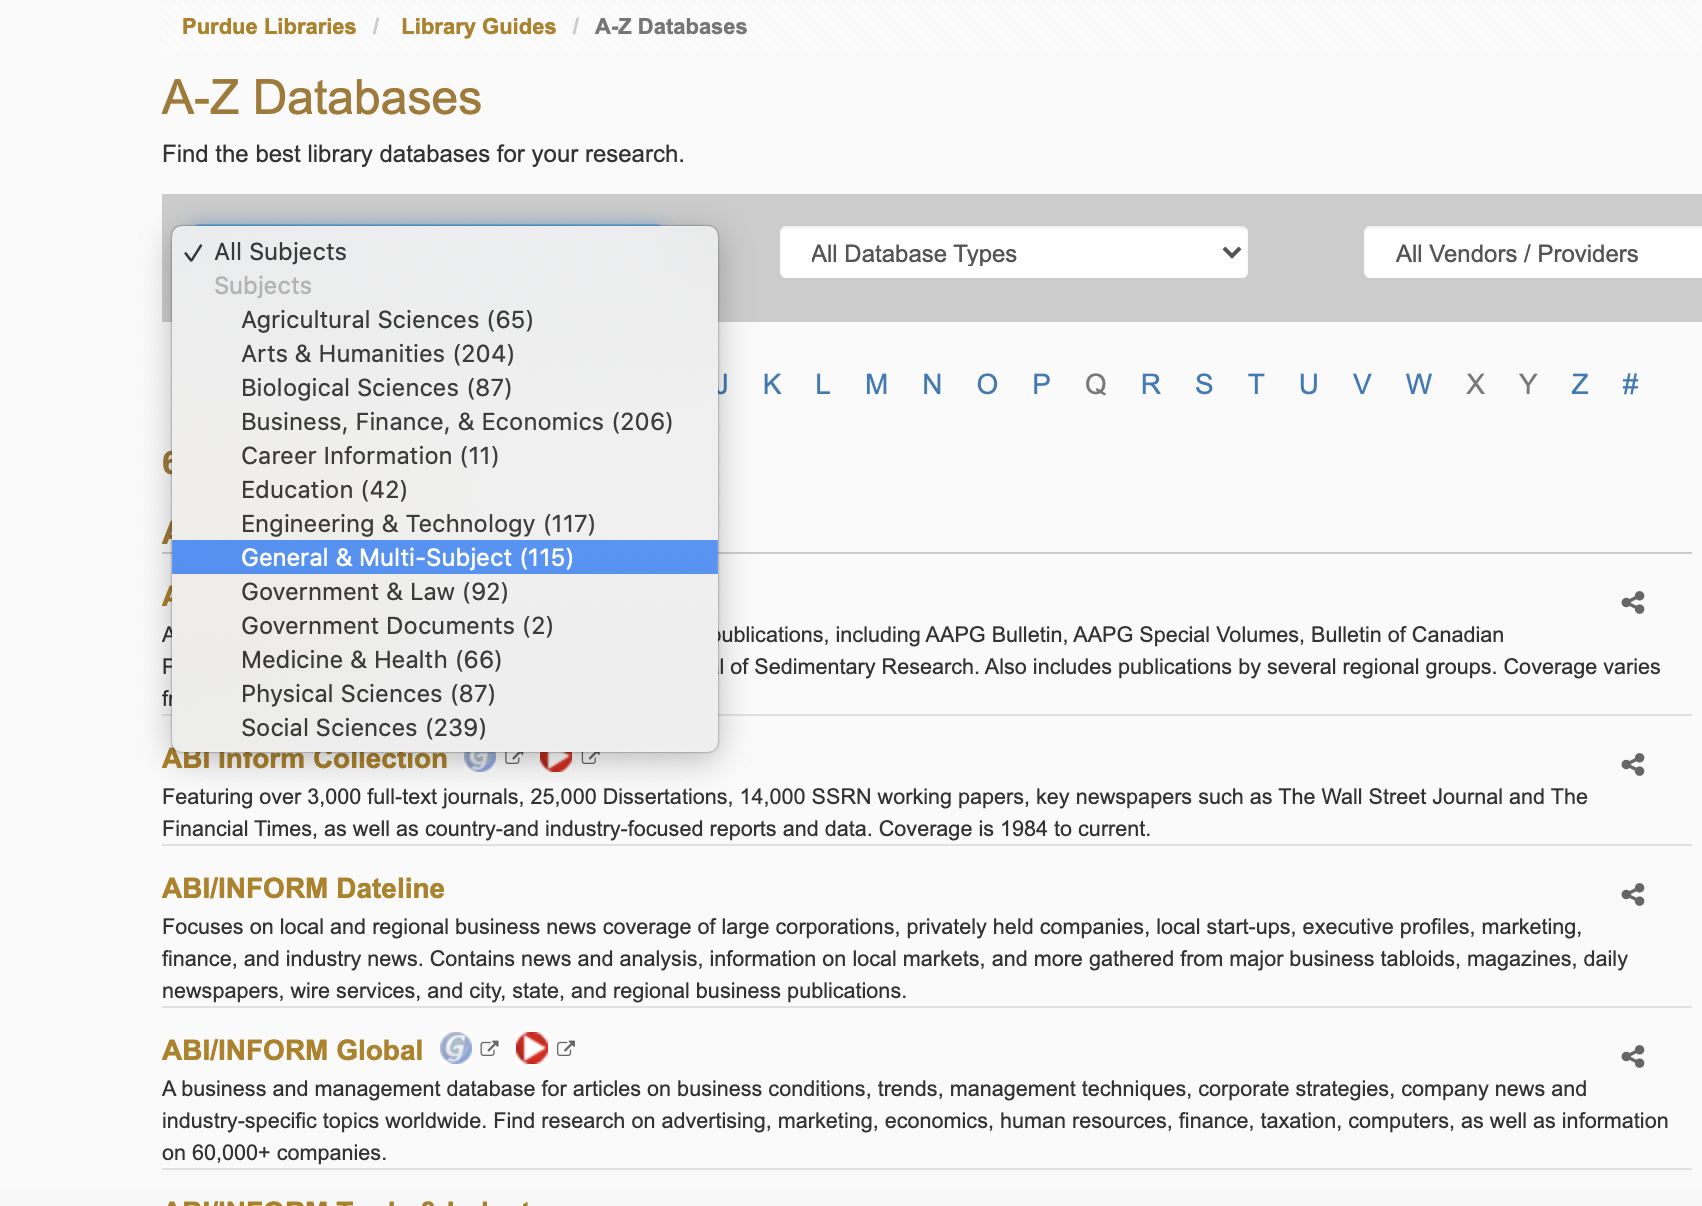 Use the All Subjects drop-down menu to filter for different subject databases.